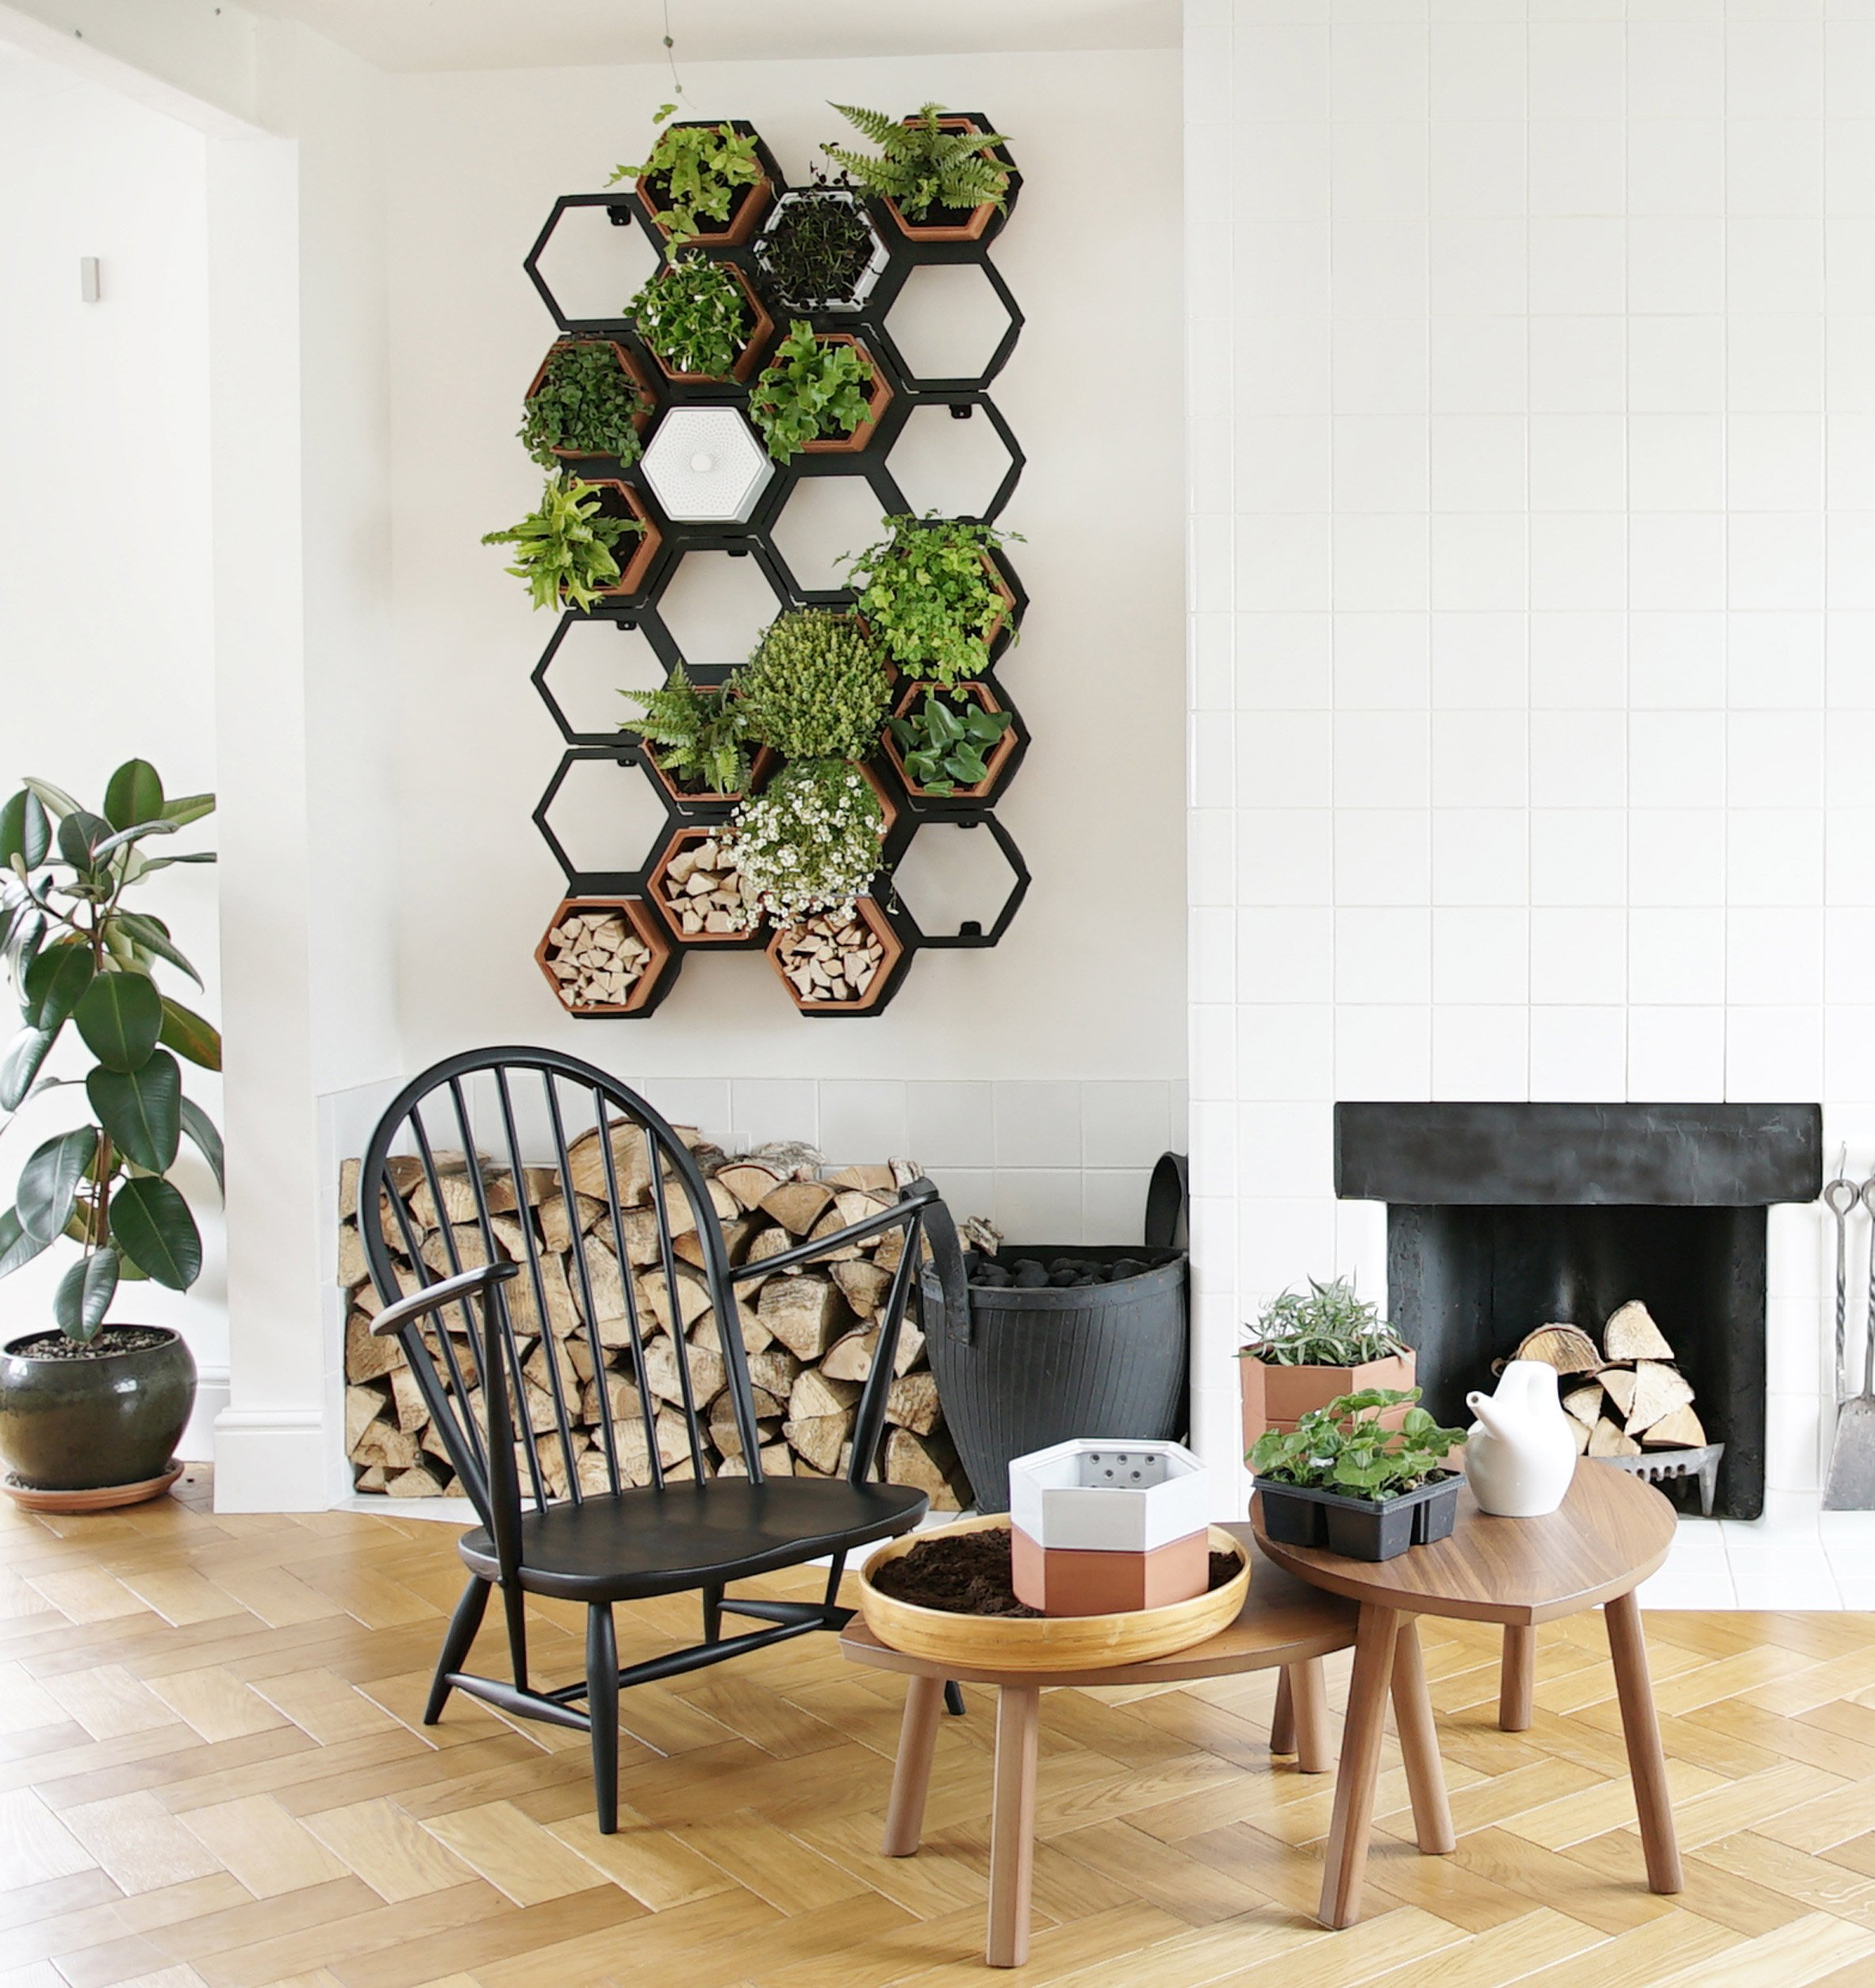 Horticus creates modular indoor living wall